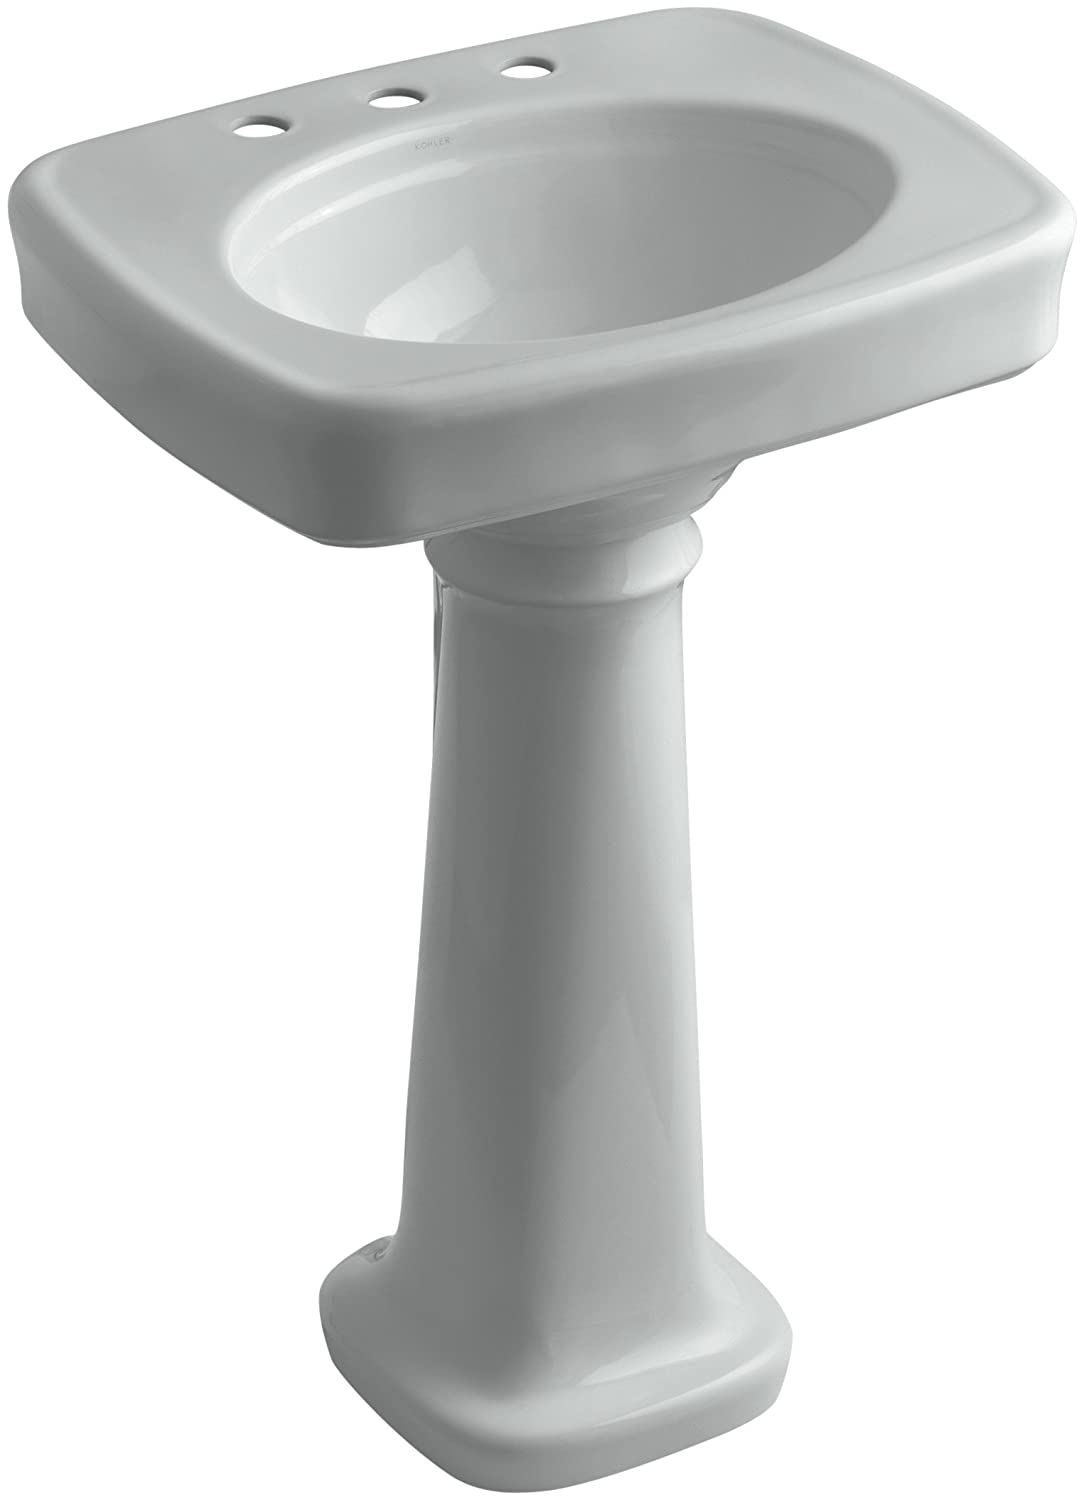 KOHLER K-2338-8-0 Bancroft Pedestal Bathroom Sink with Centers for 8 ...